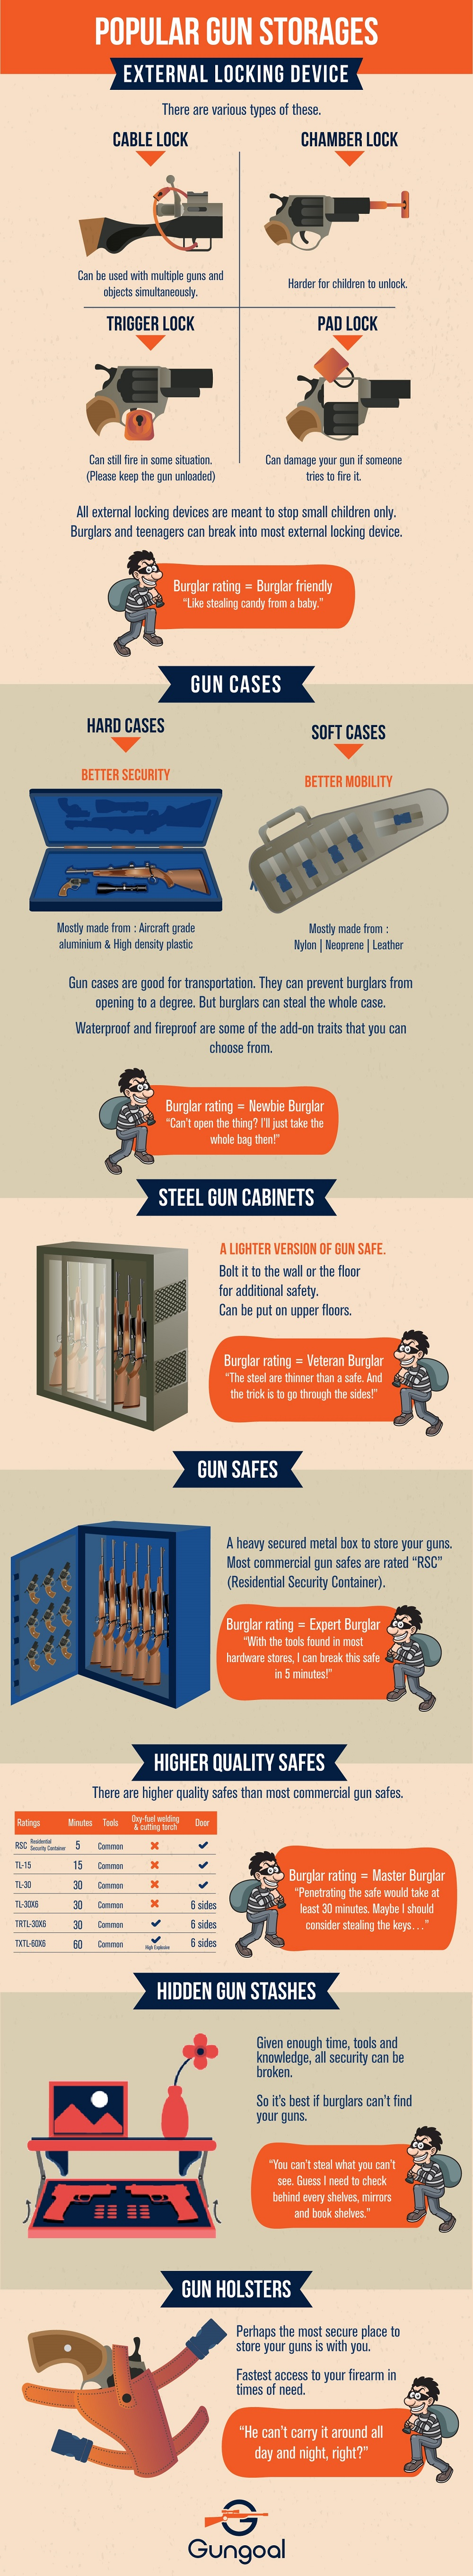 An infographic on popular gun storages